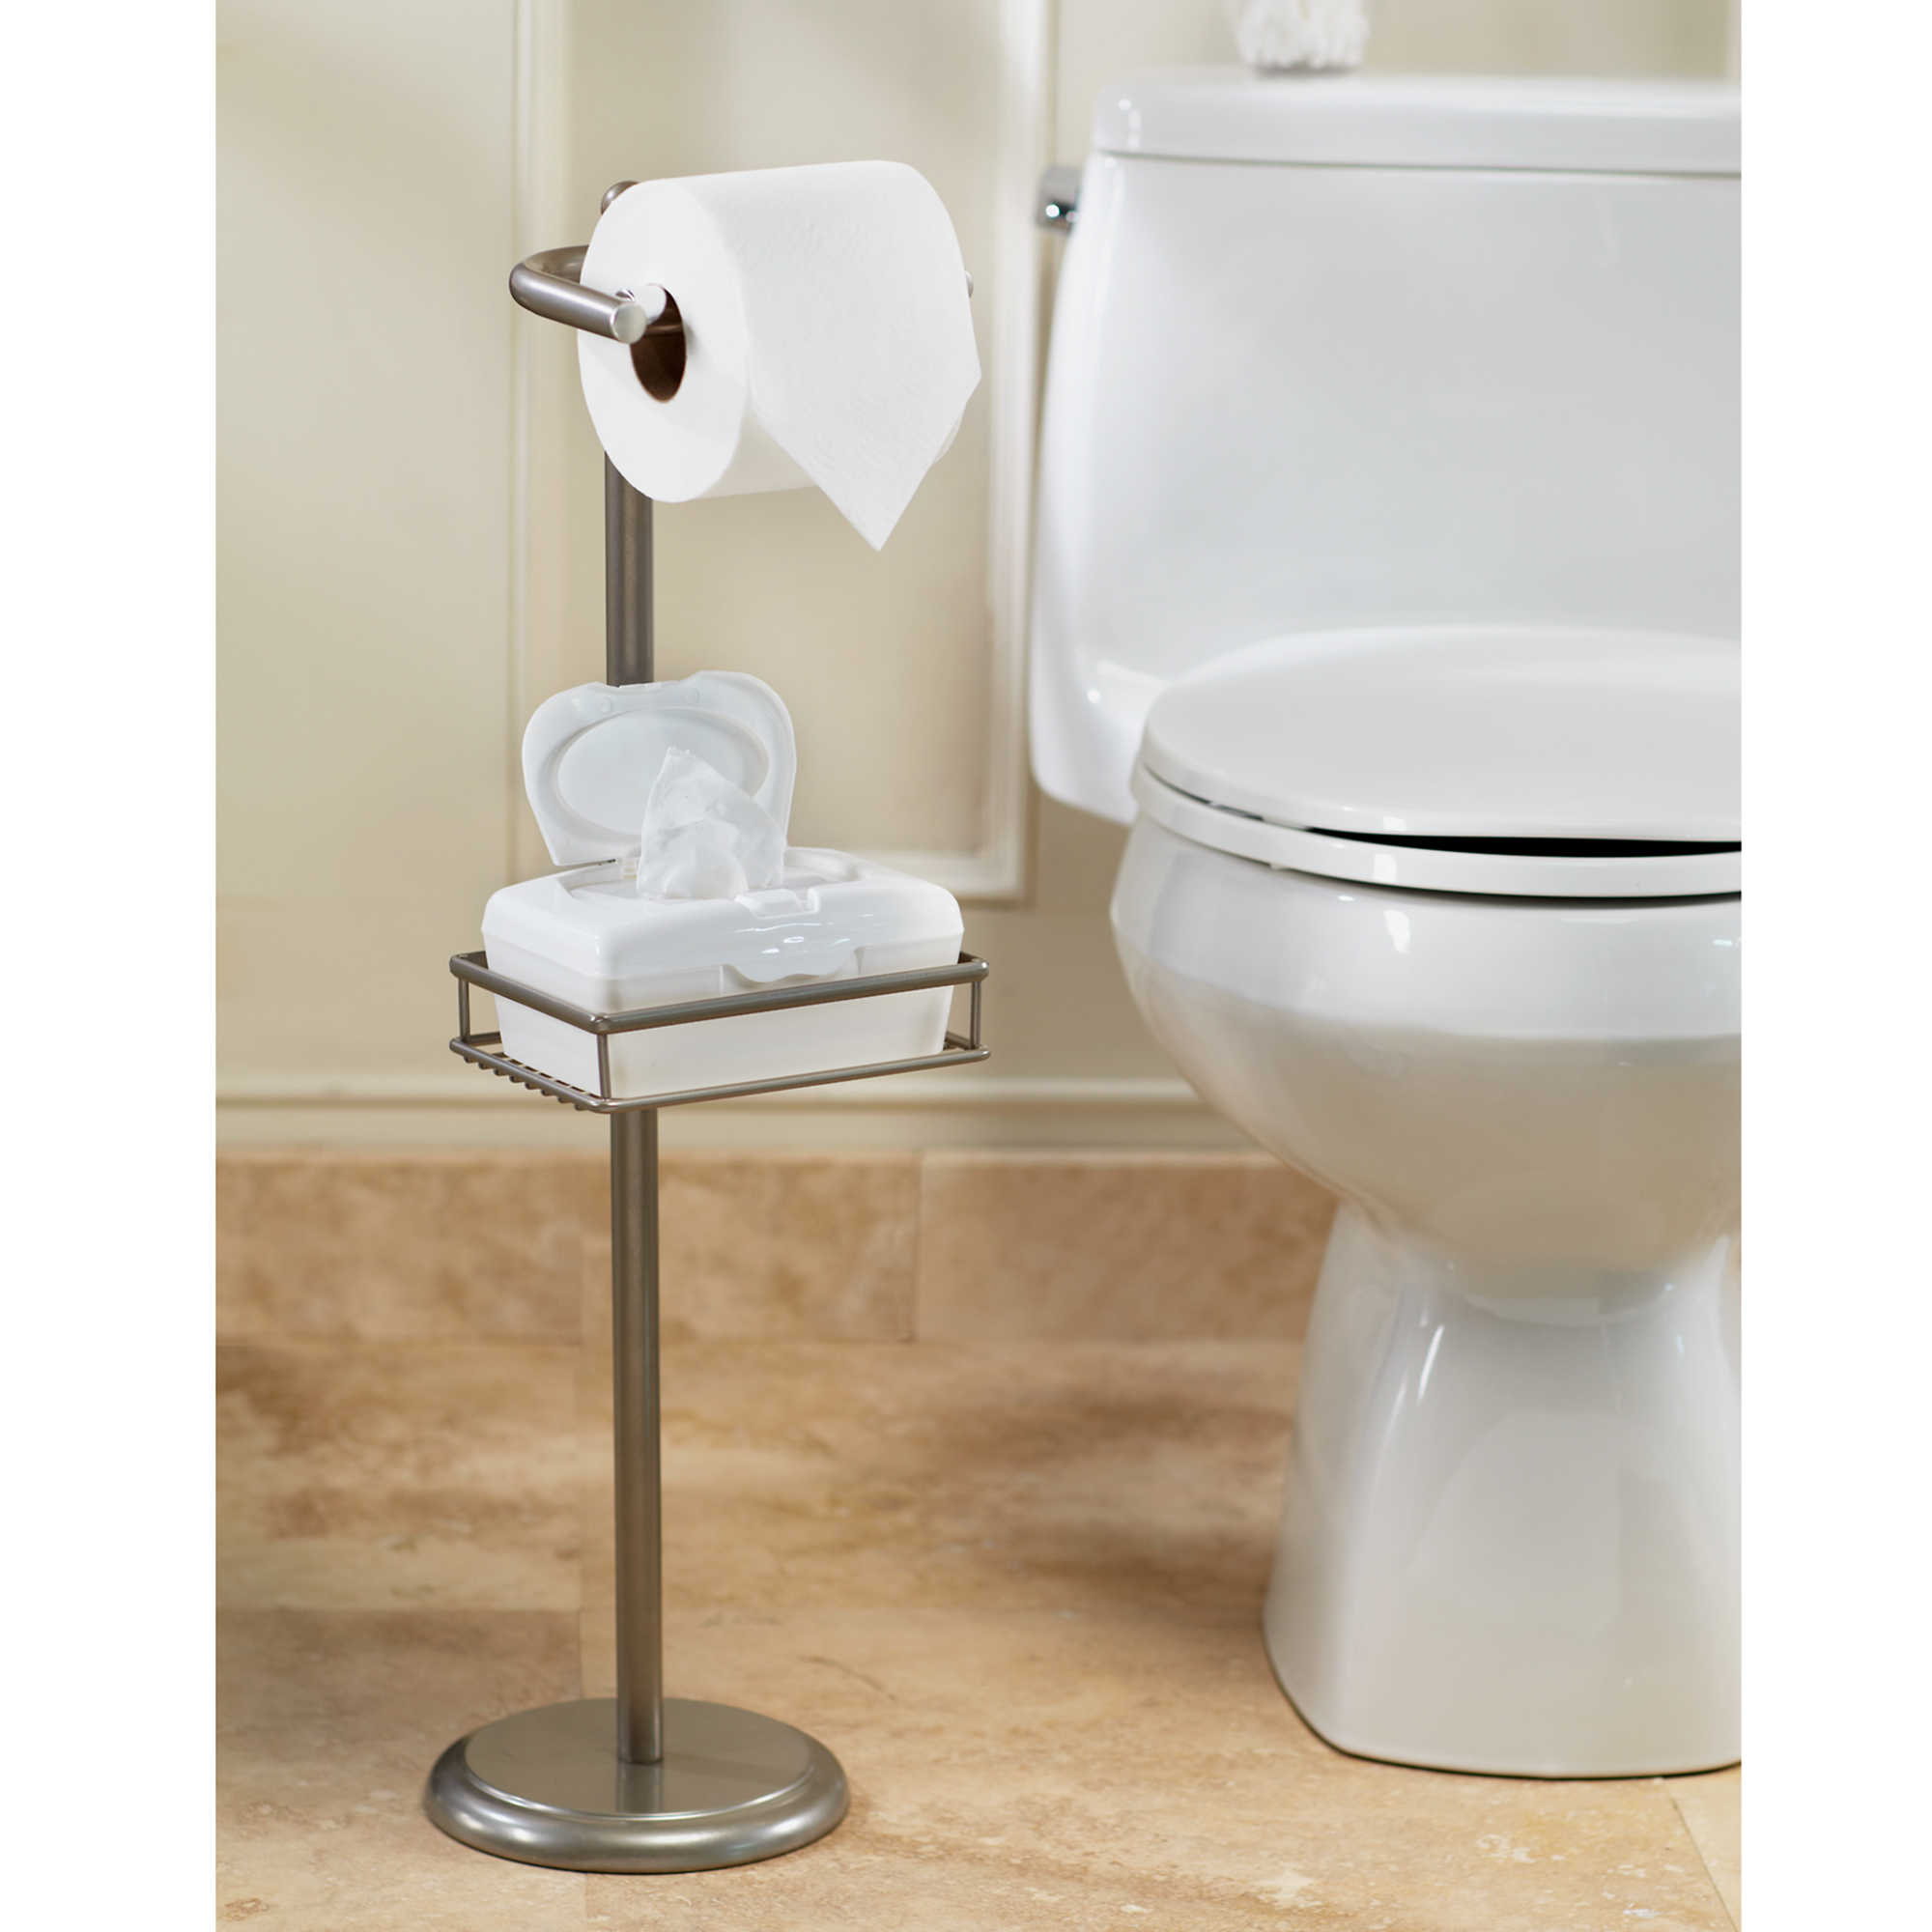 Bed bath and beyond fort myers fl - Image Of Spa Creations Toilet Paper Stand With Wet Wipe Adjustable Shelf